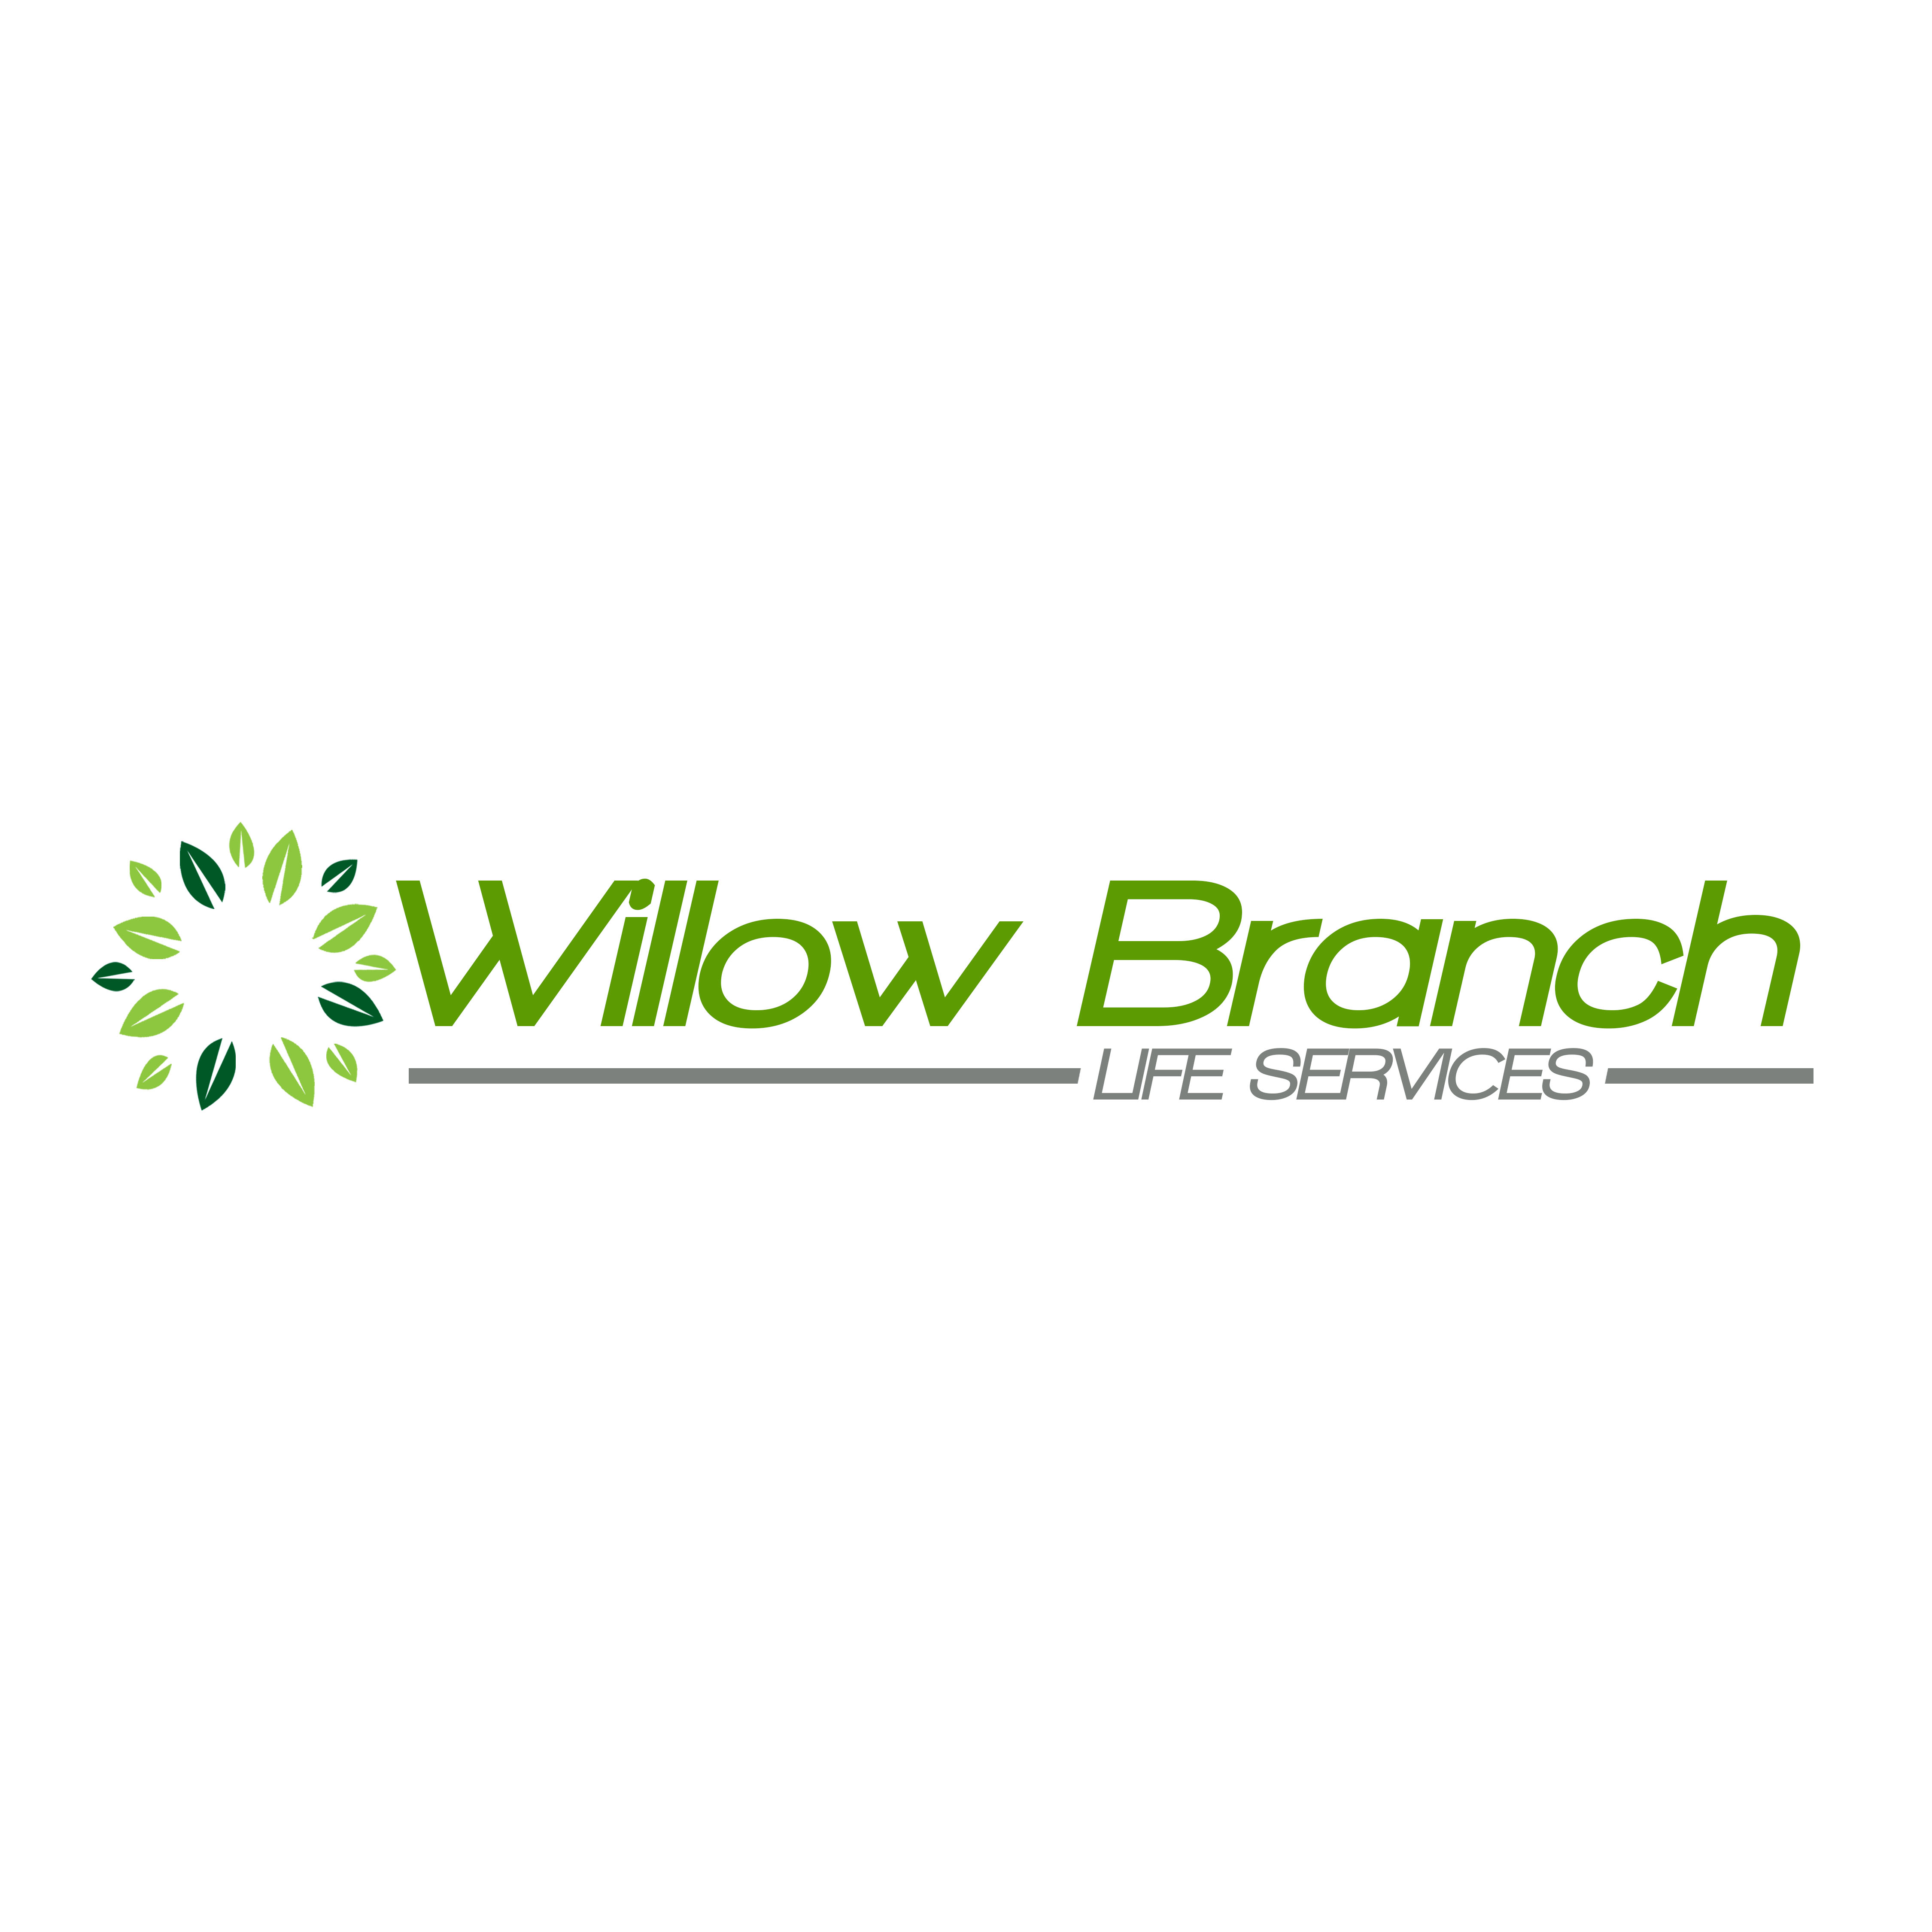 Logo Design by Private User - Entry No. 197 in the Logo Design Contest Artistic Logo Design for Willow Branch Life Service.